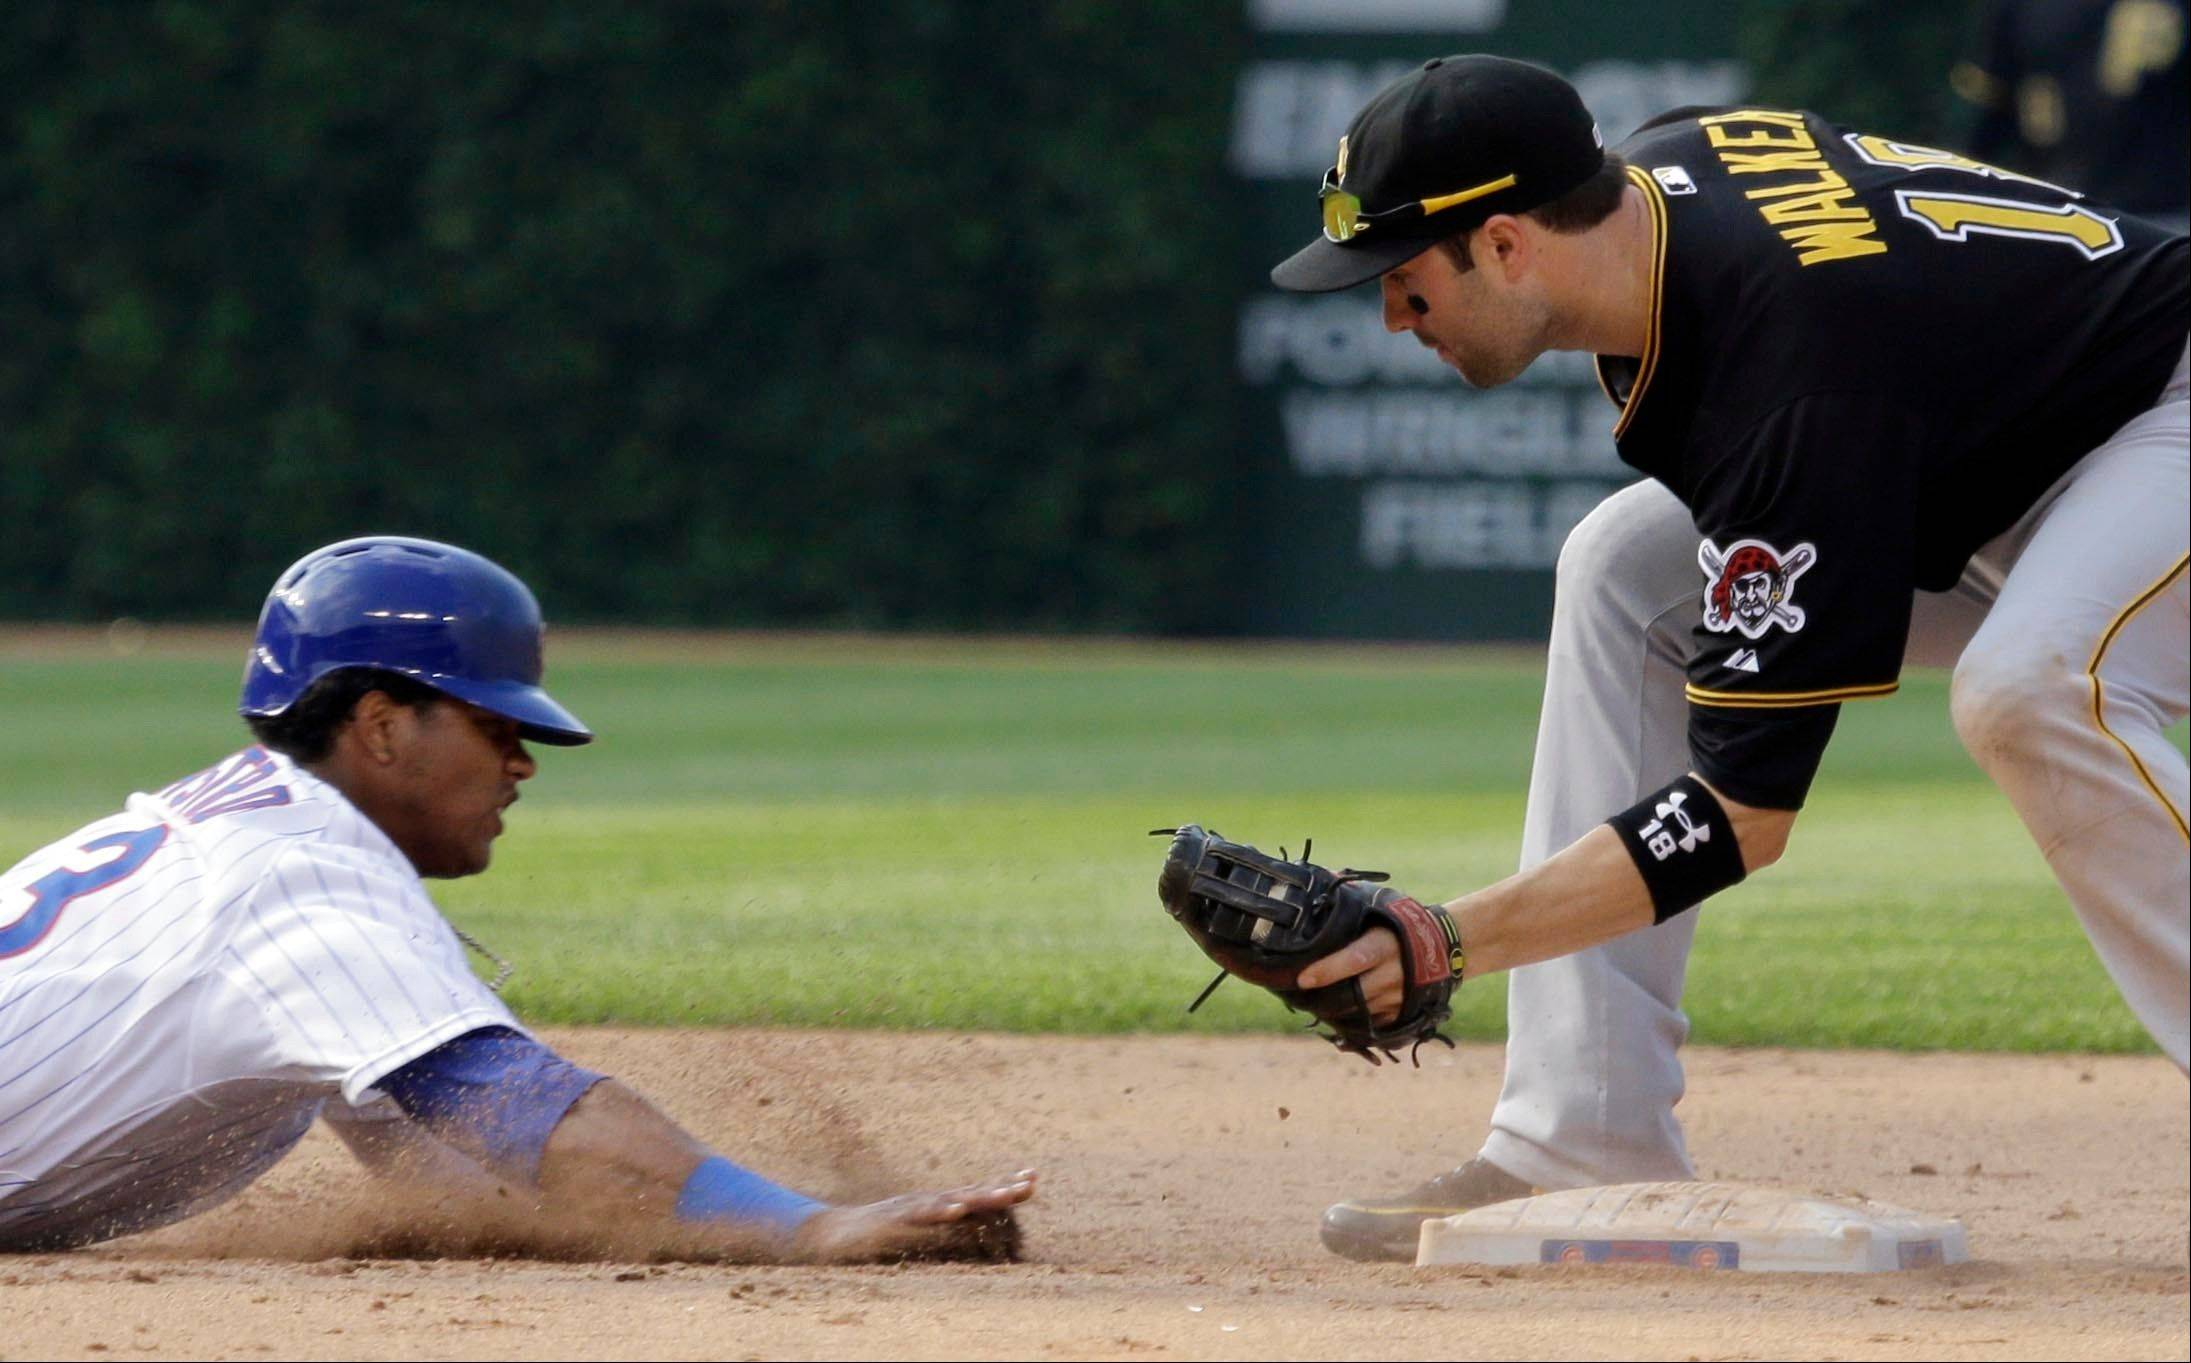 Pittsburgh Pirates second baseman Neil Walker tags out Chicago Cubs' Starlin Castro during the eighth inning Friday.